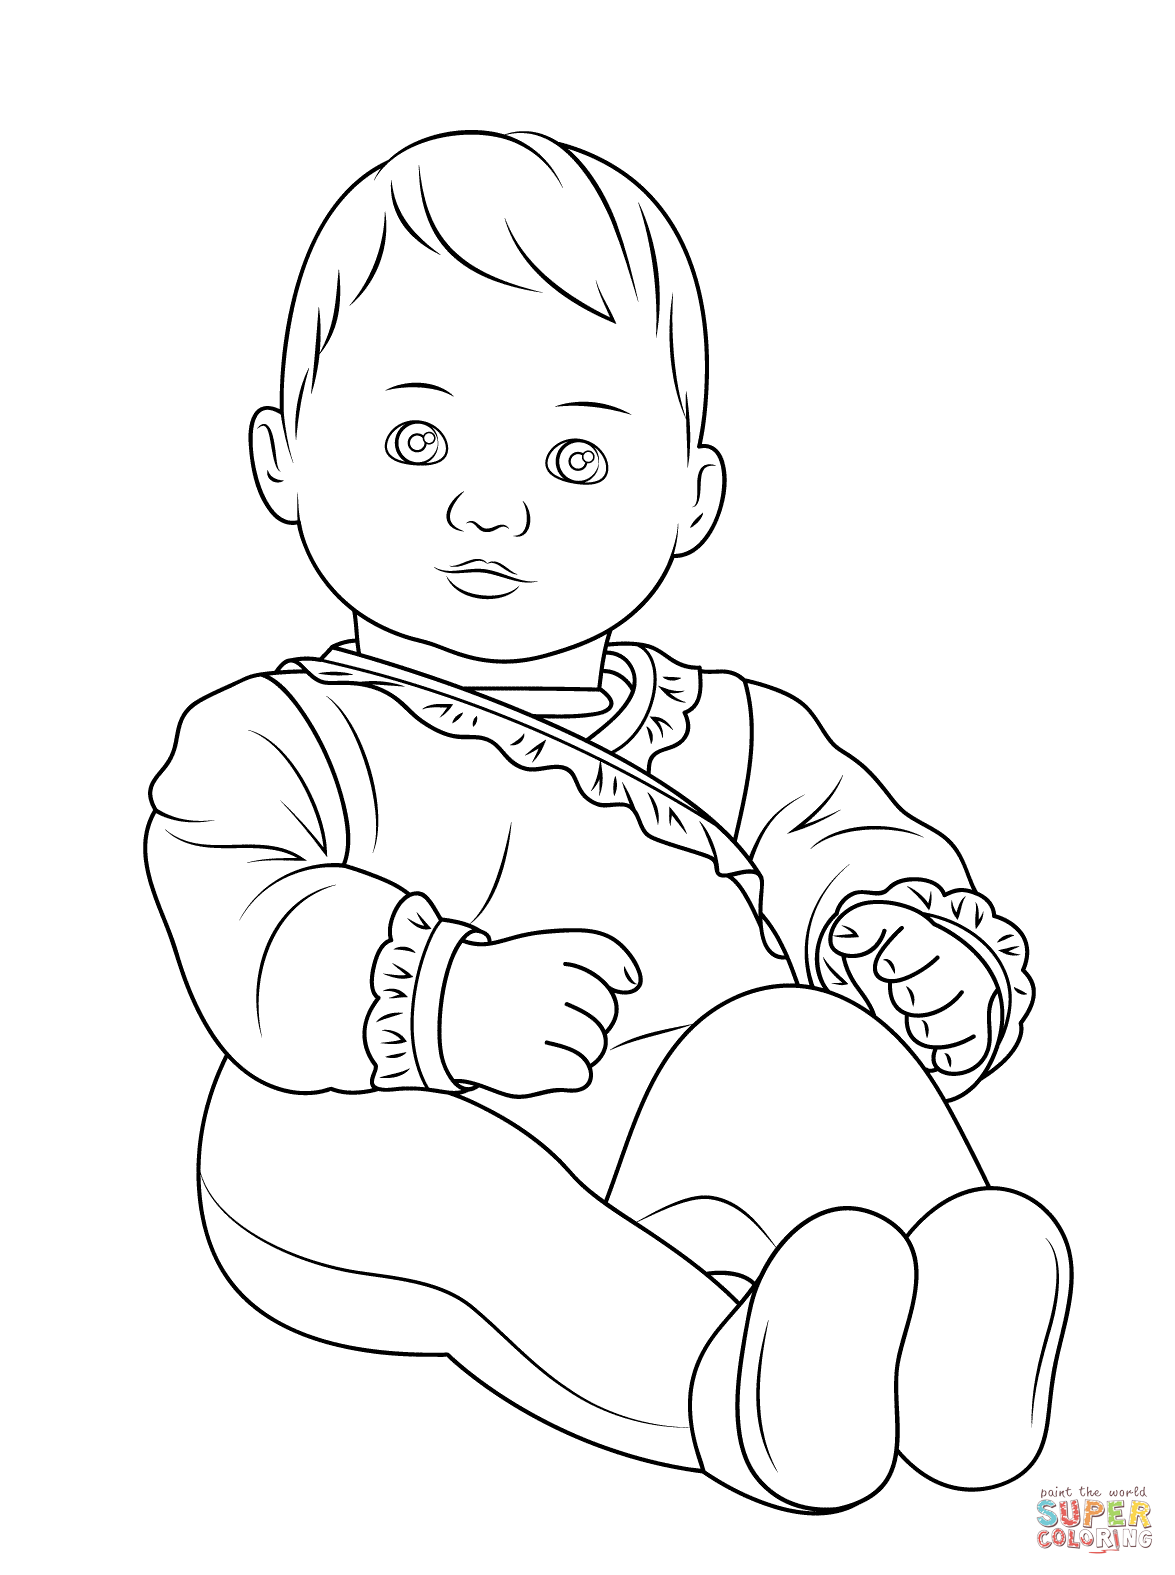 birth-and-newborn-baby-coloring-page-0024-q1